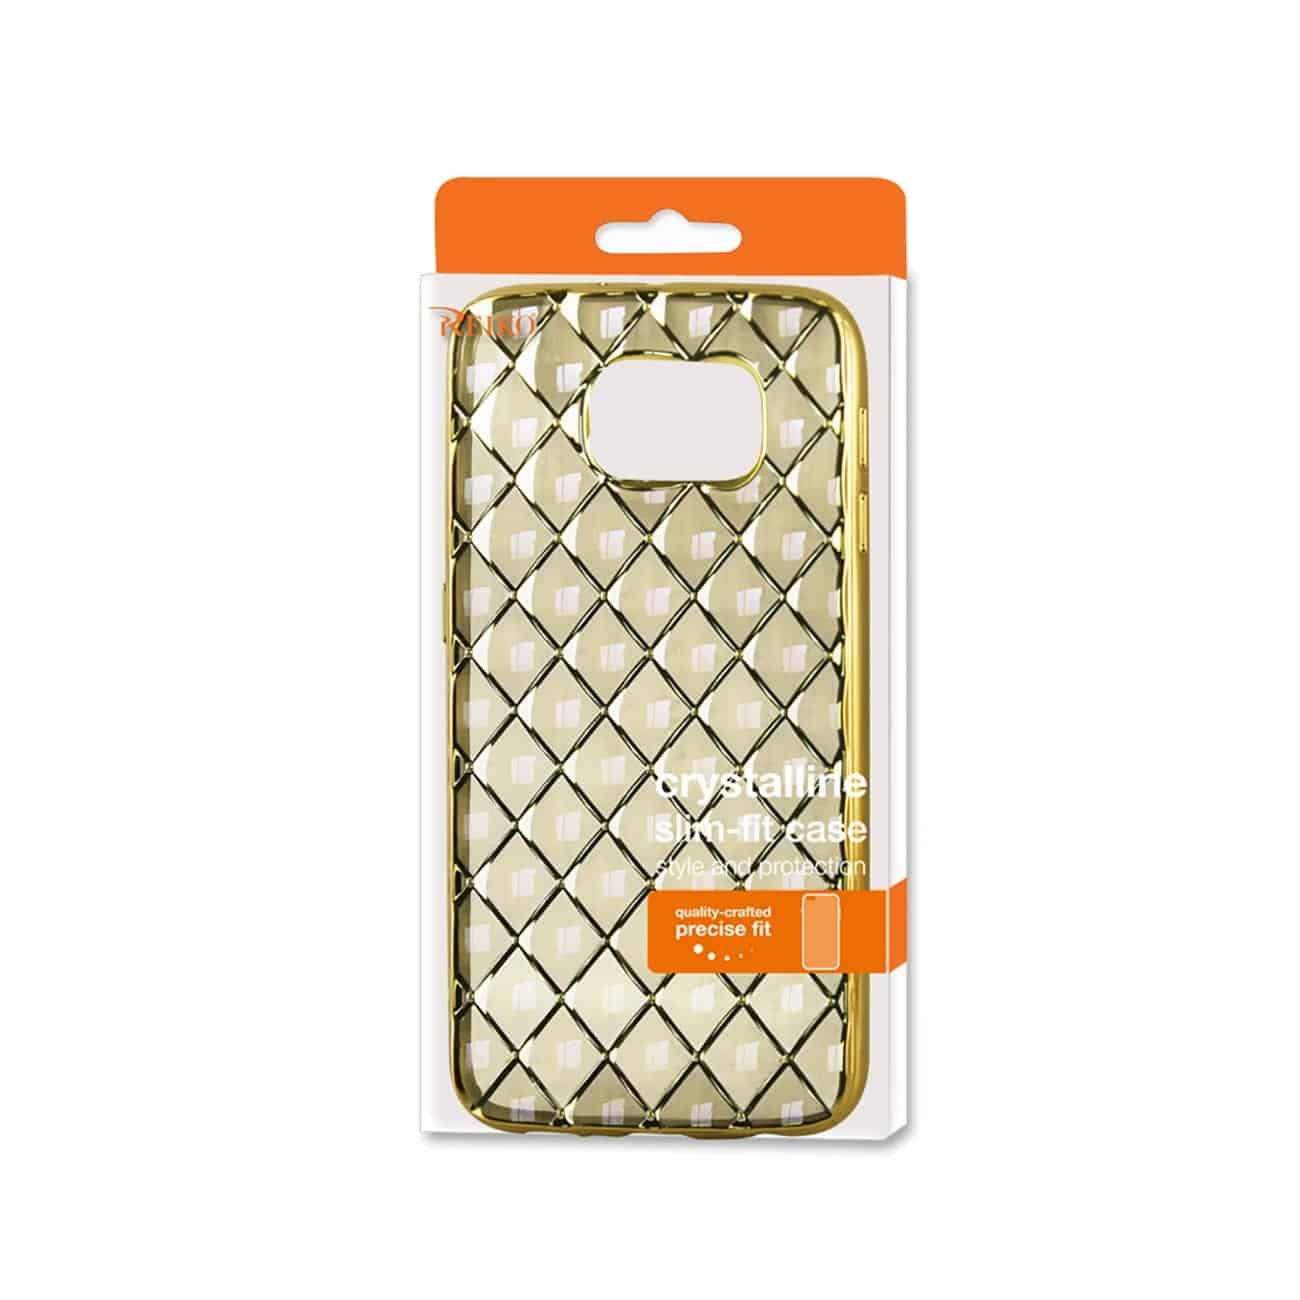 SAMSUNG GALAXY S6 FLEXIBLE 3D RHOMBUS PATTERN TPU CASE WITH SHINY FRAME IN GOLD